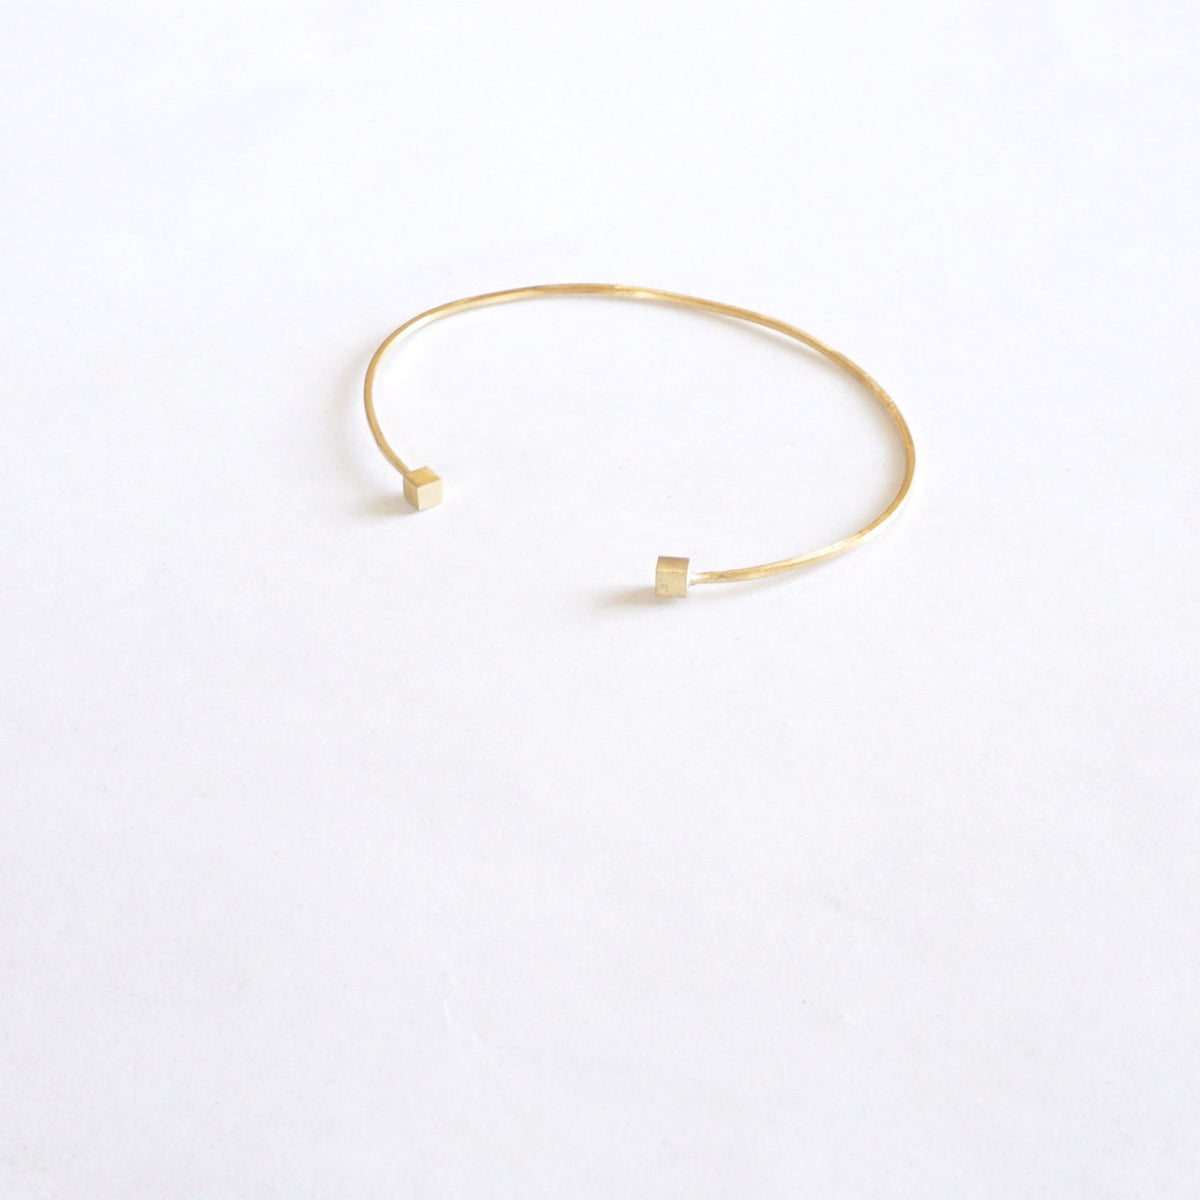 Simple Yet Elegant, Hand-Made Open Cuff Bangle Bracelet With Double Cube Ends - 0207 - Virginia Wynne Designs